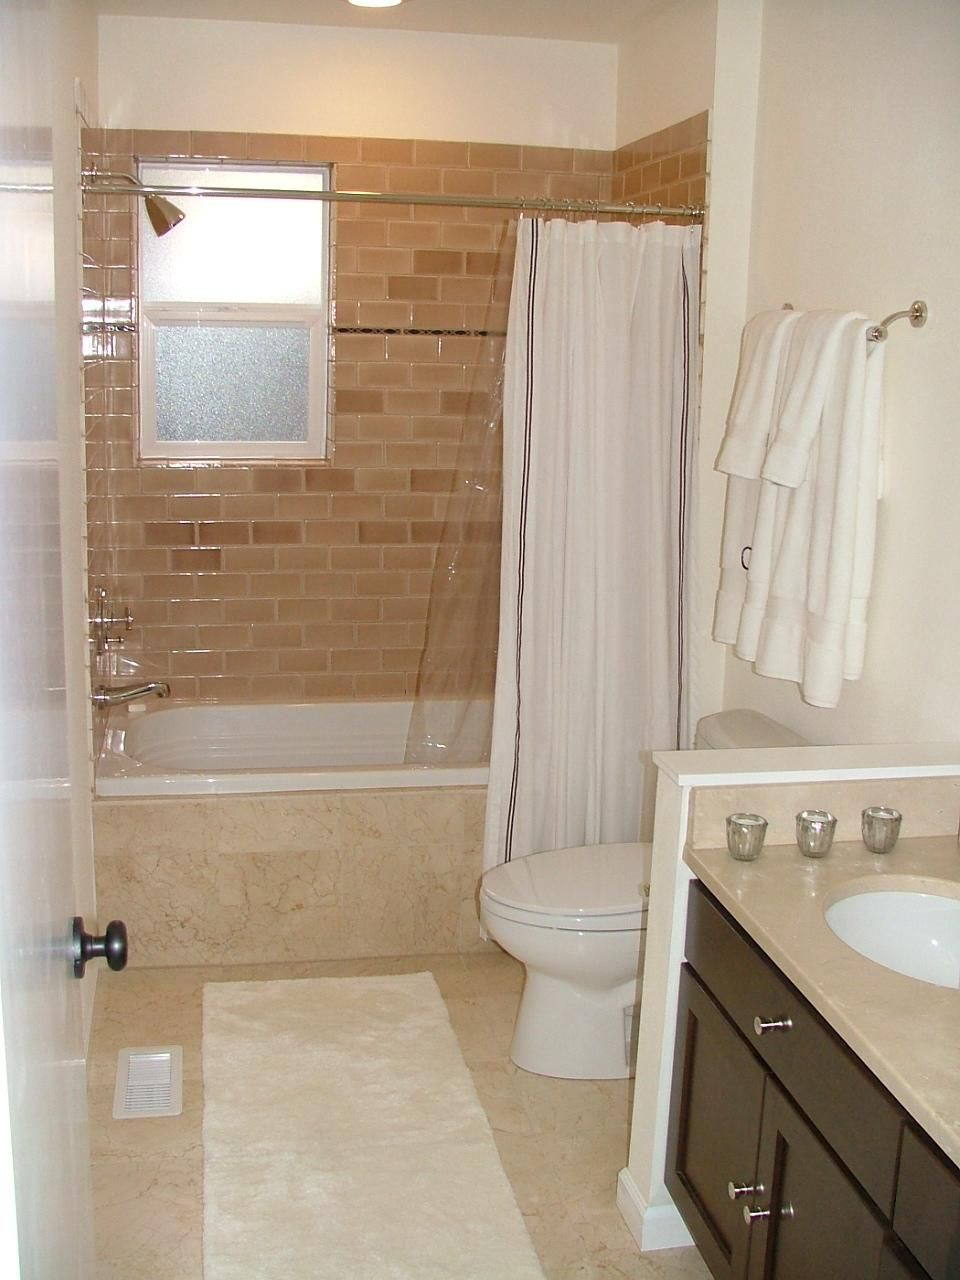 Small Bathrooms Are Less Expensive To Remodel Compared With A - Cute bath towel sets for small bathroom ideas